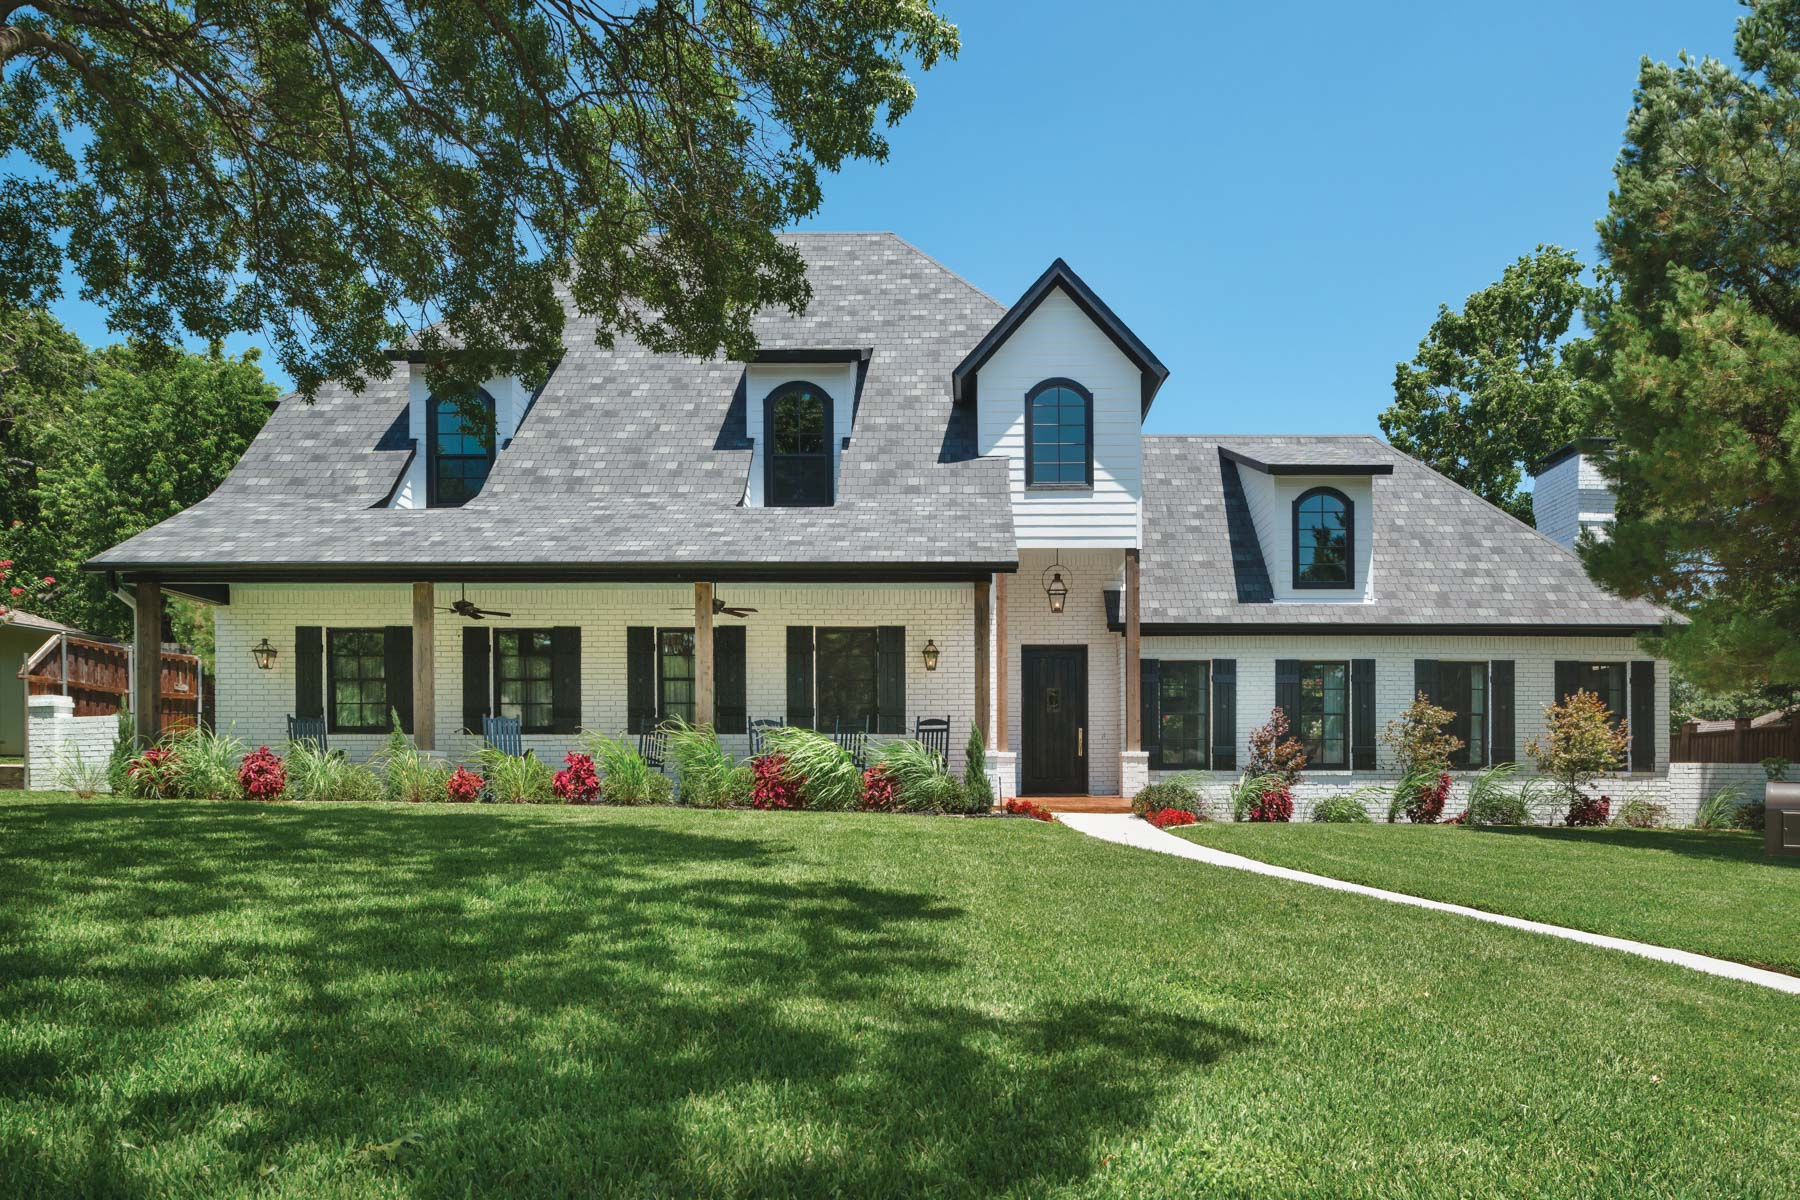 Vivienda unifamiliar por un Venta en Preston Hollow Traditional 6911 Waggoner Dr Dallas, Texas, 75230 Estados Unidos